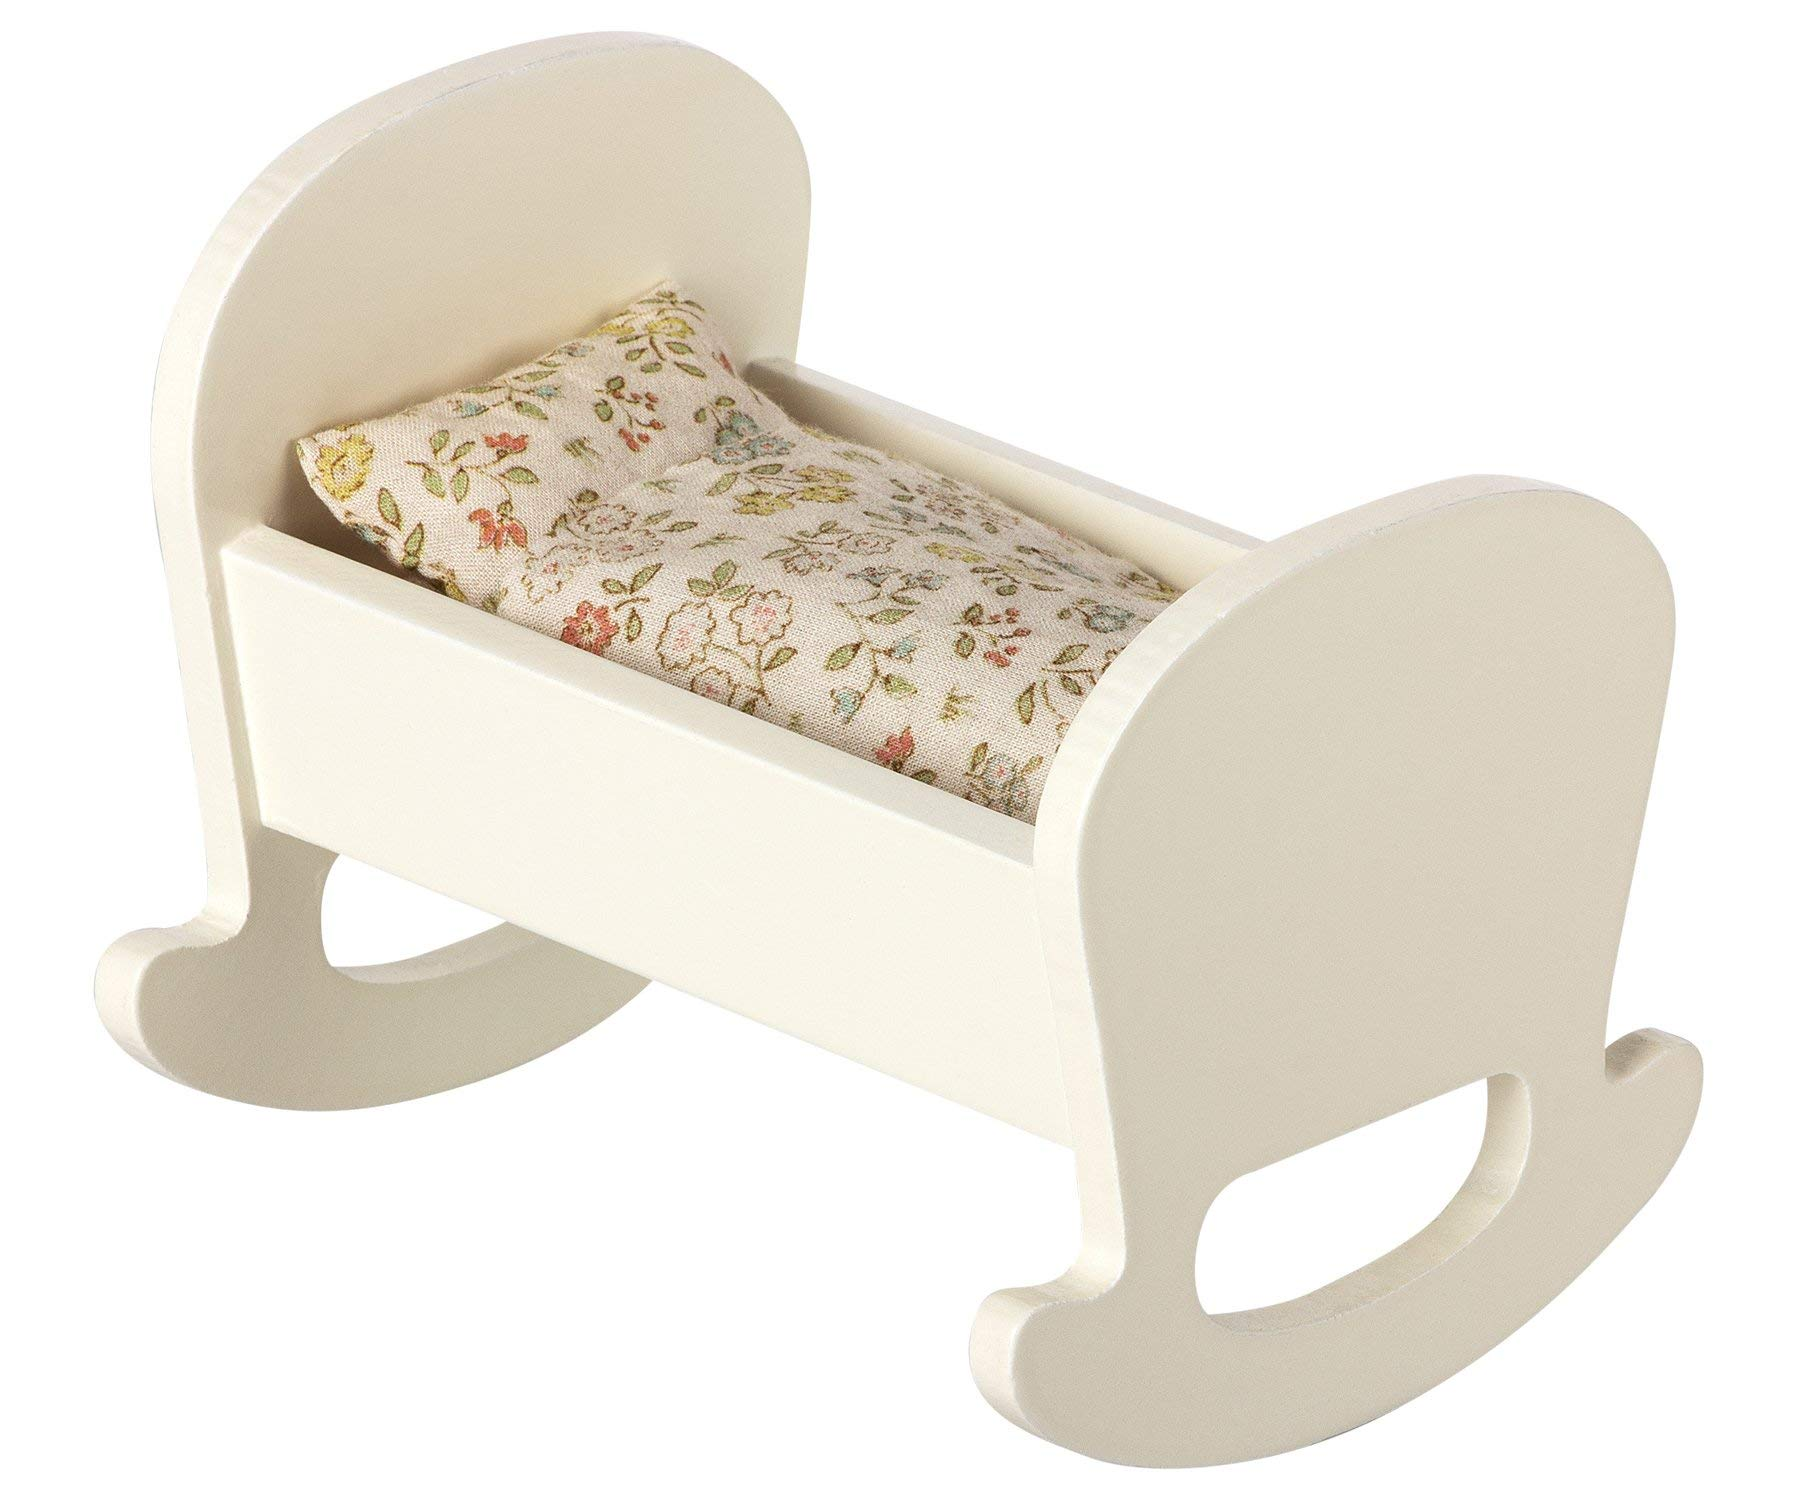 Maileg Wood Cradle for Baby Mouse by Maileg